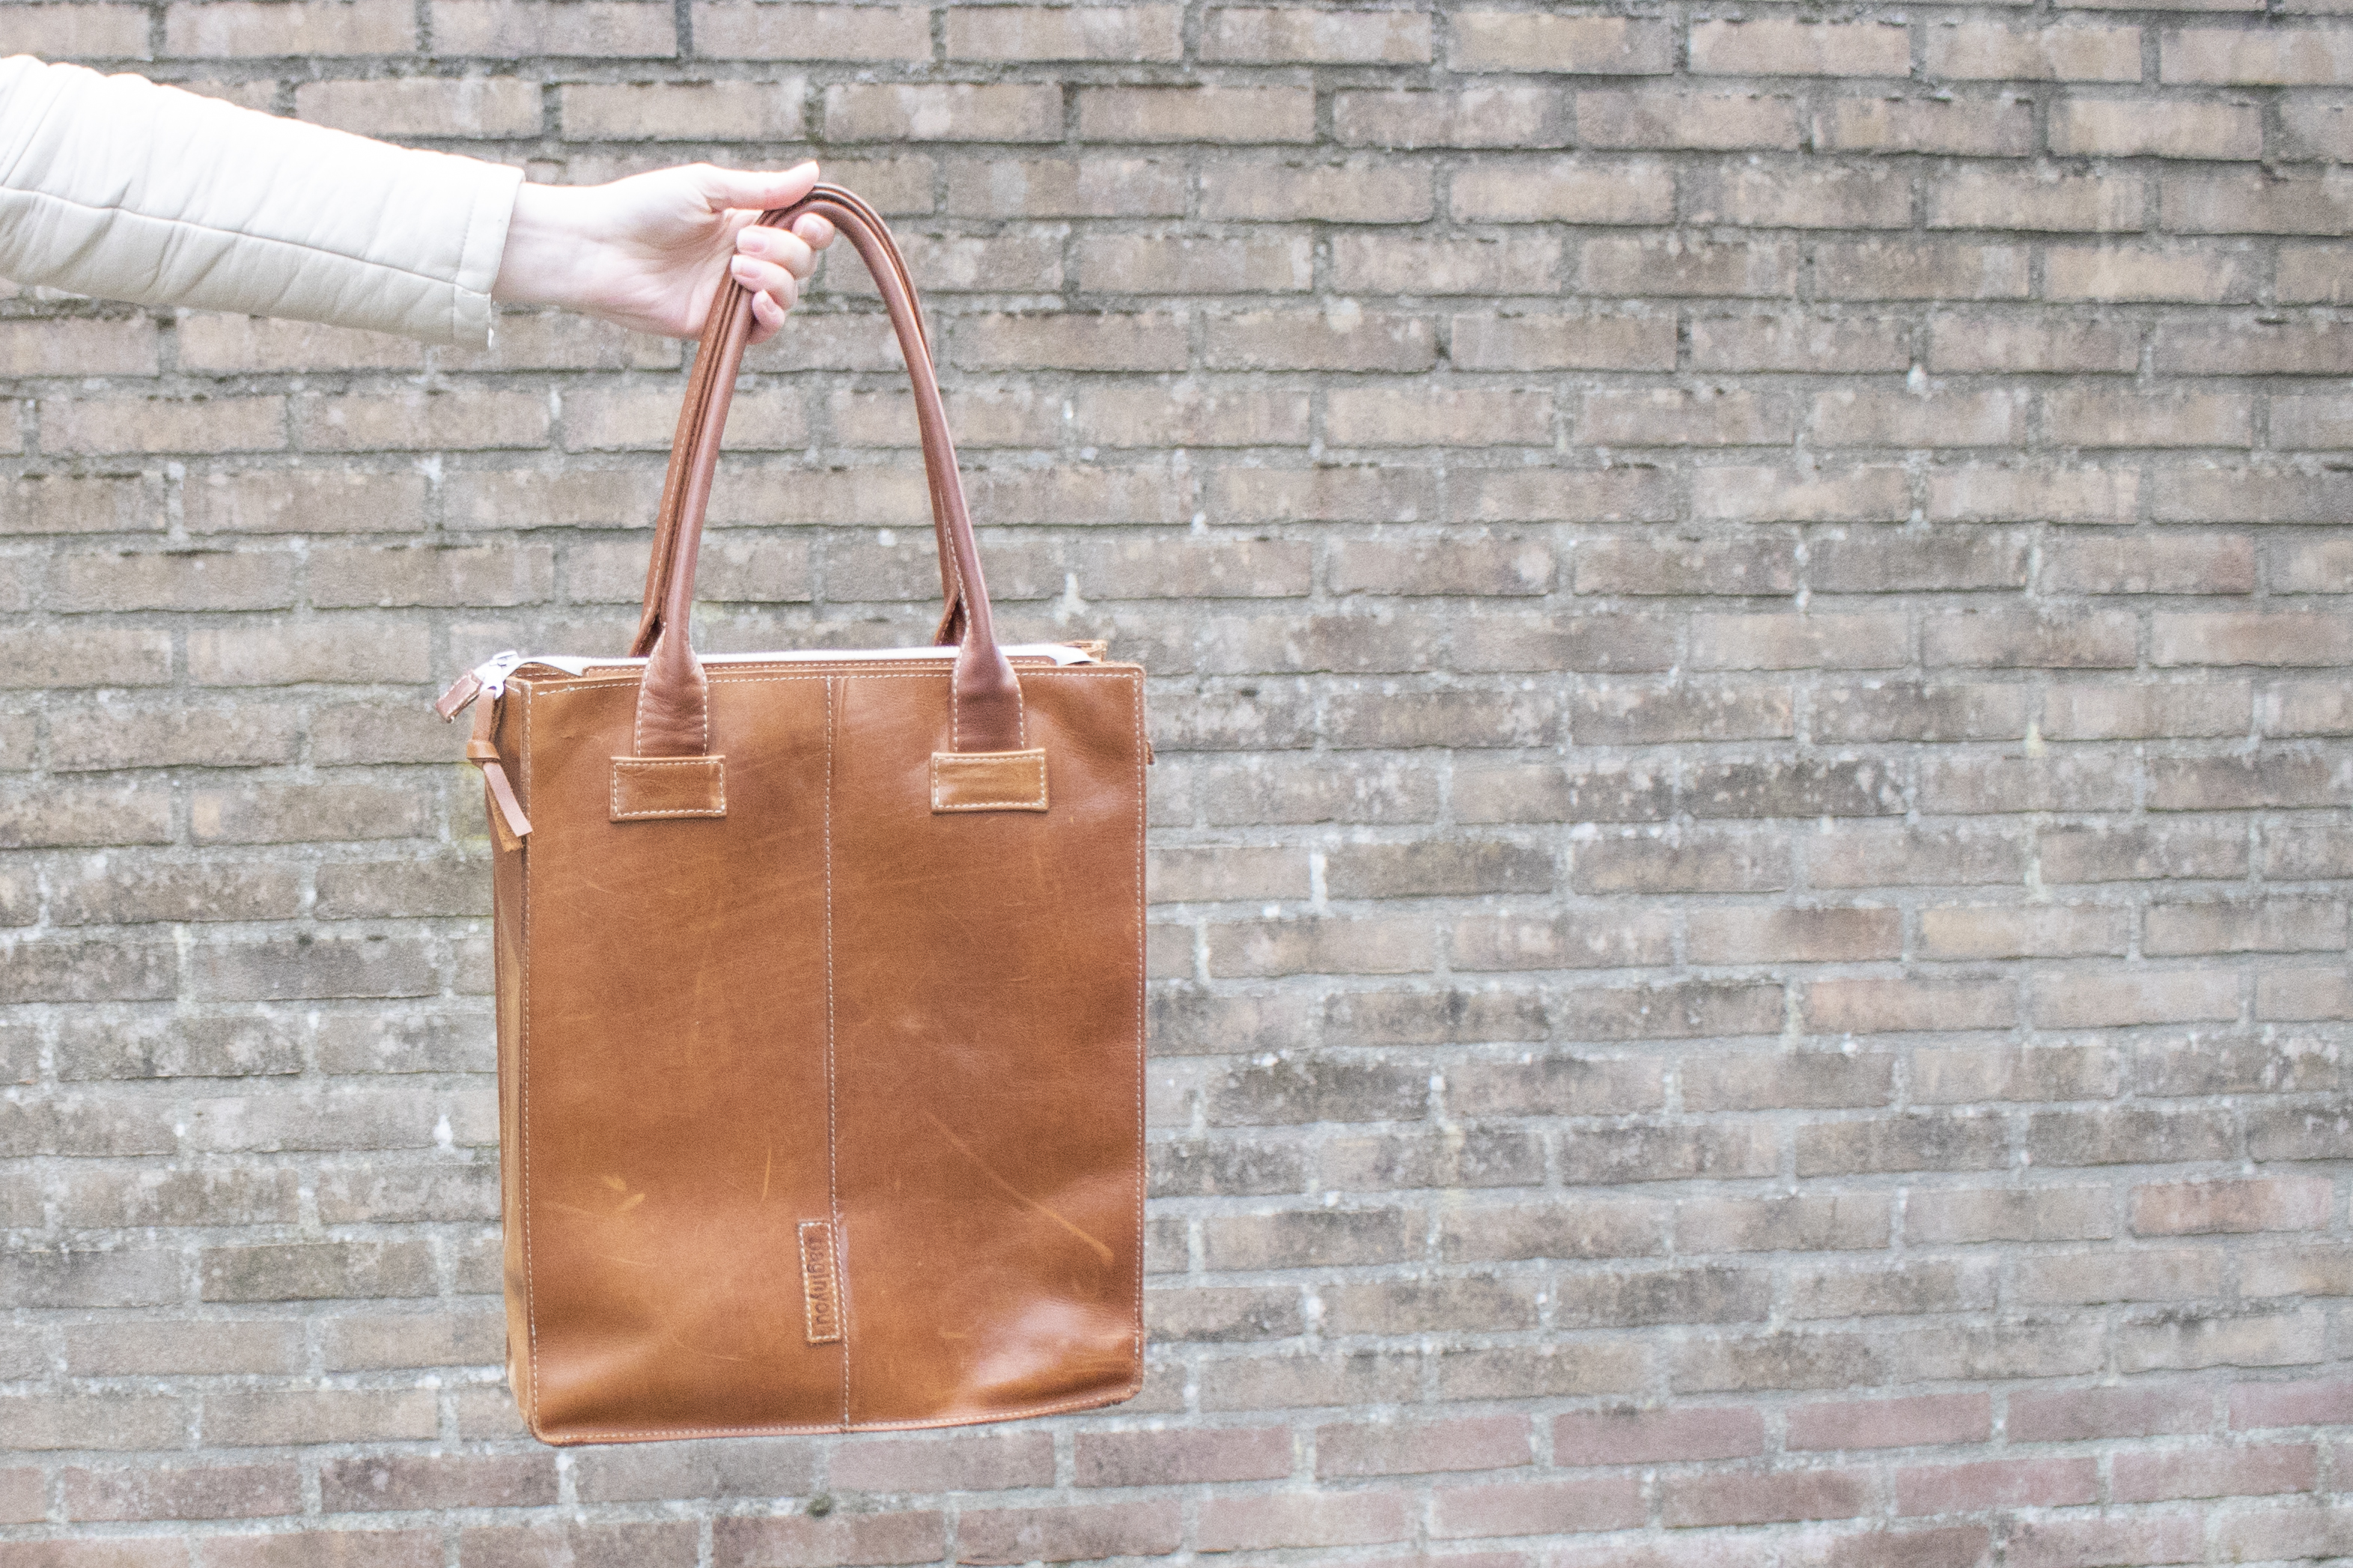 bag in you handgemaakte leren tas